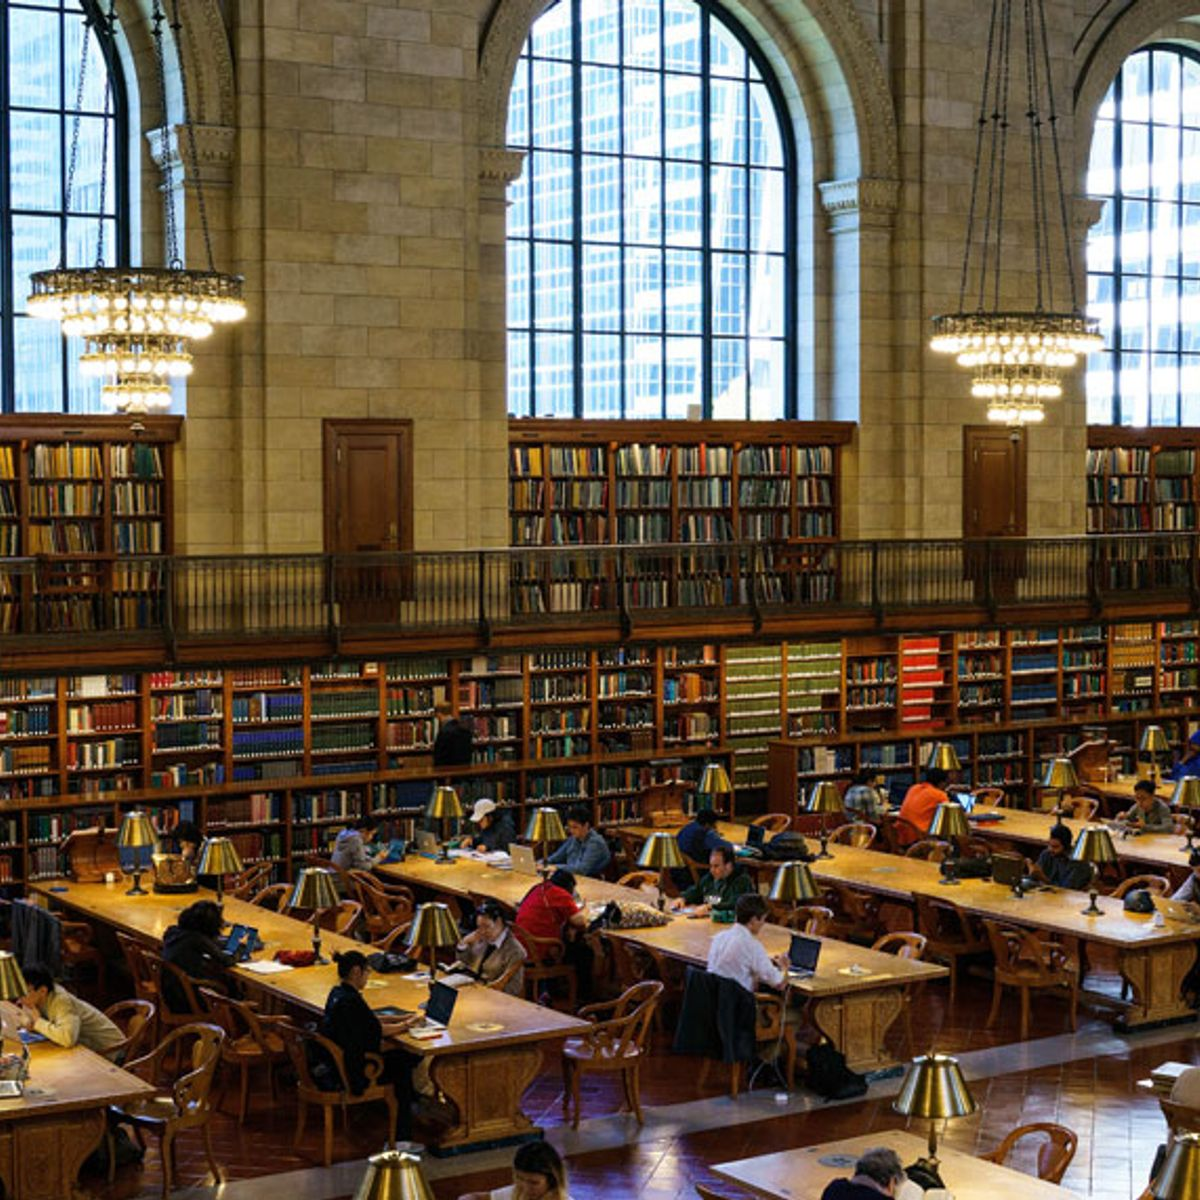 As the welfare state decays, public libraries become sites of social trauma